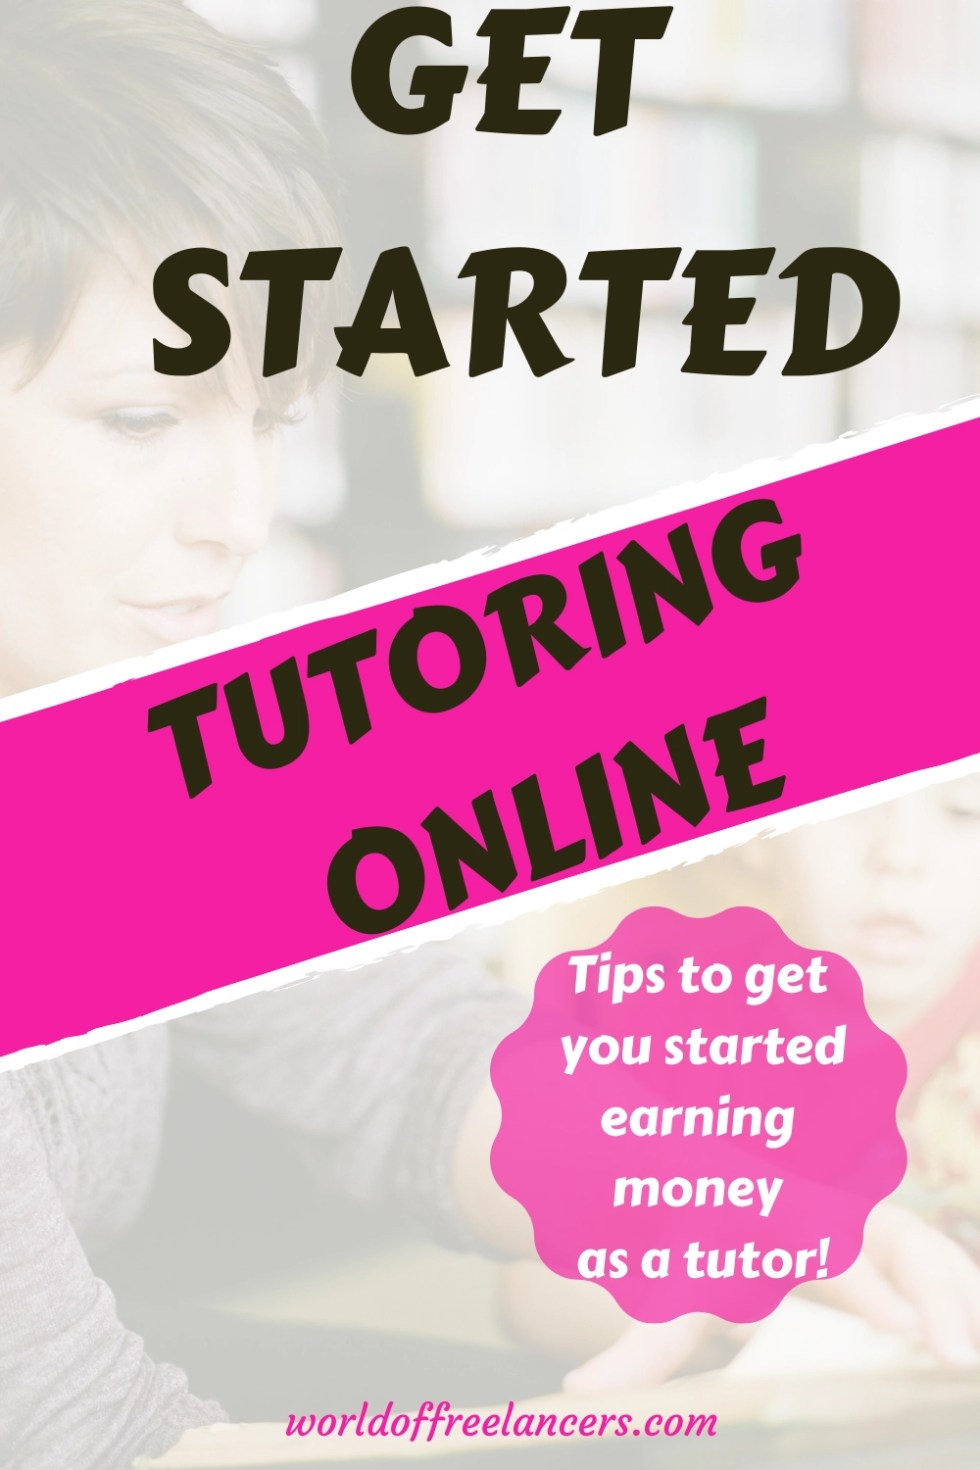 Get started tutoring online - tips to get you started earning money as a tutor